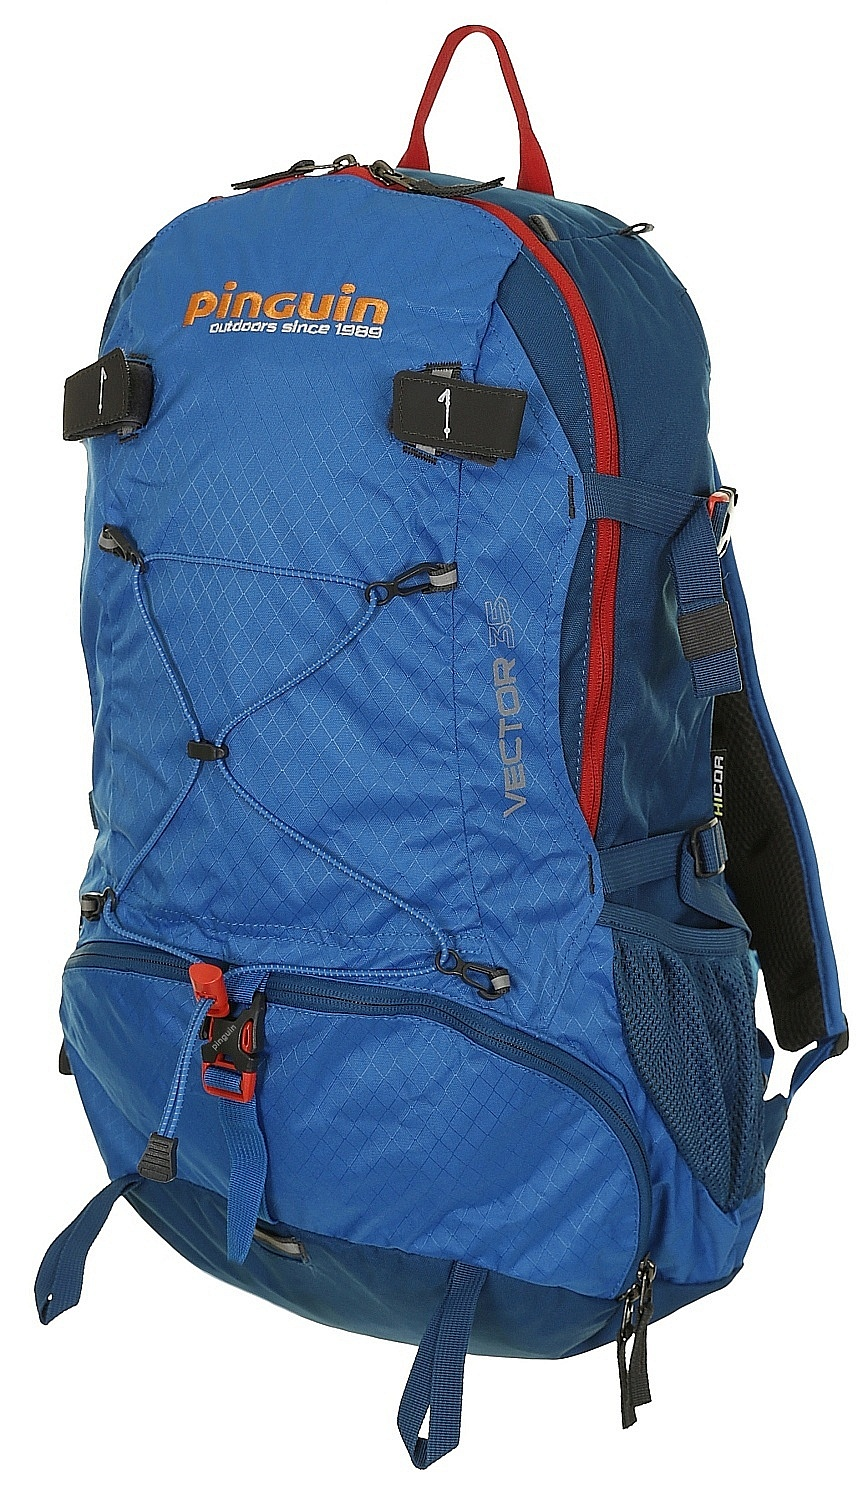 198a4bcfbe backpack Pinguin Vector 35 - Blue - Snowboard shop